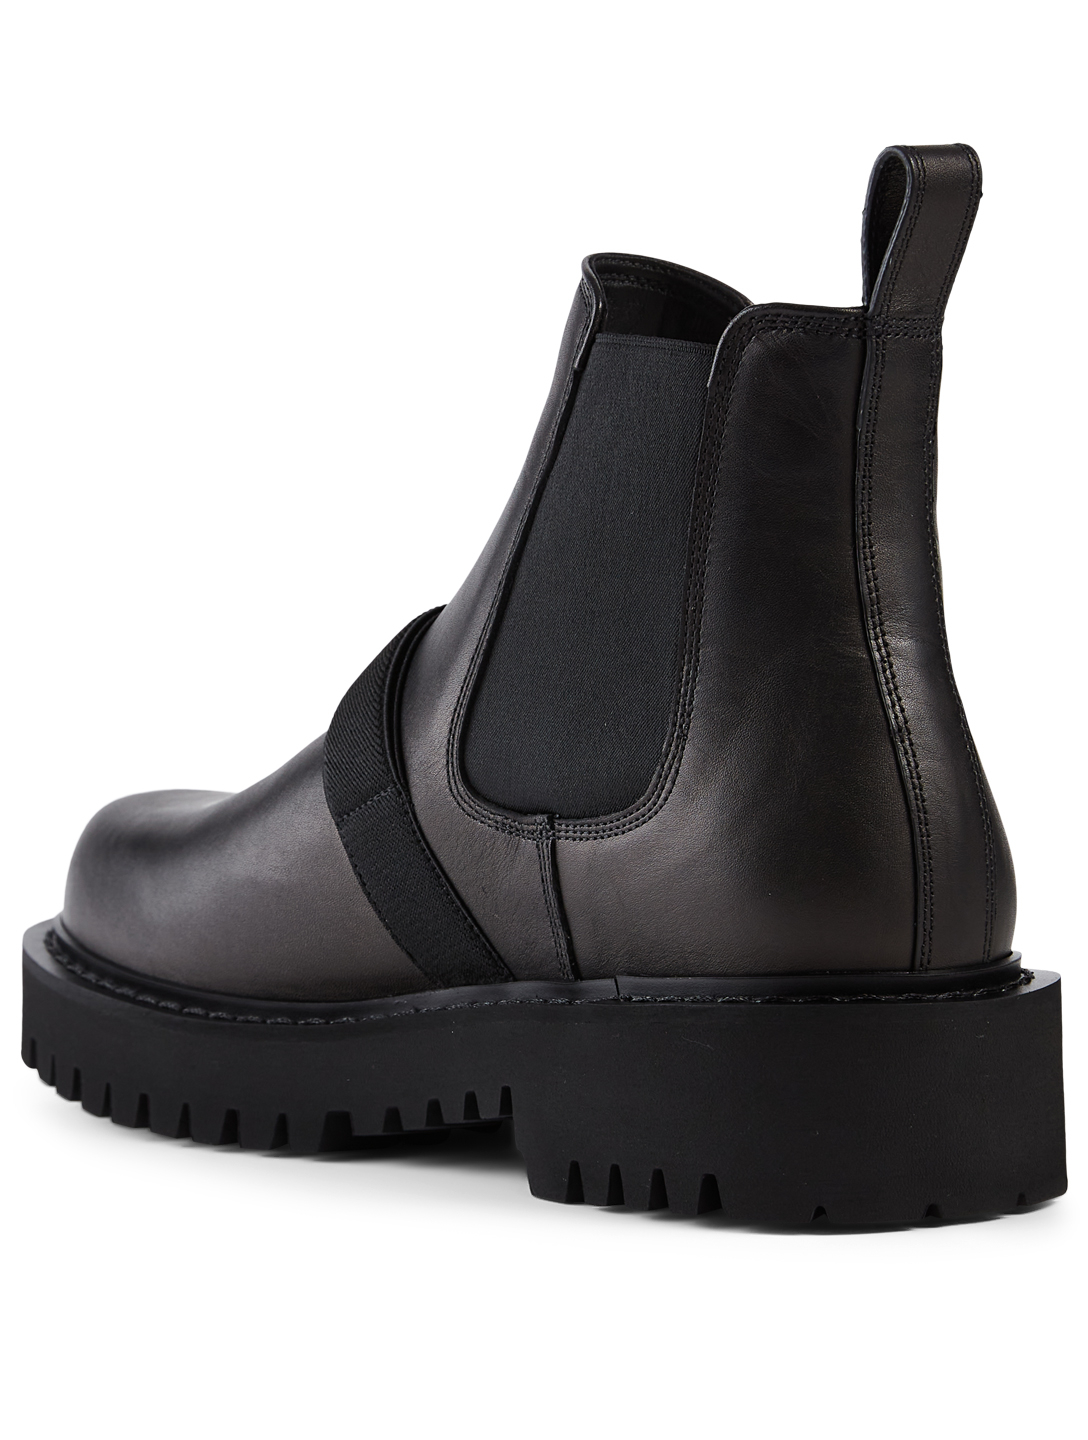 VALENTINO GARAVANI Leather Beatle Boots With VLTN Buckle Men's Black